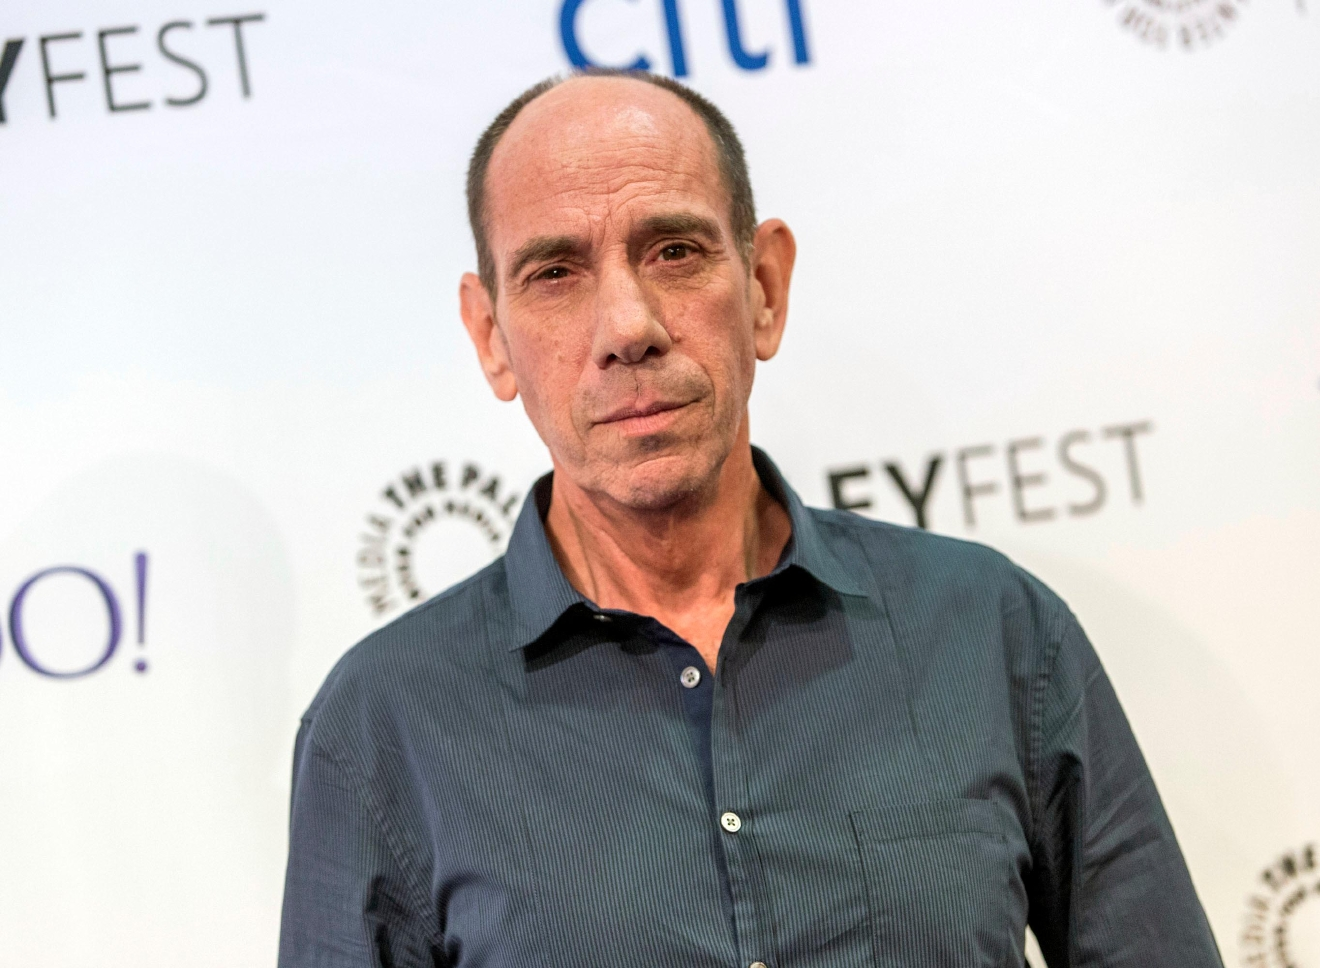 "FILE - This Sept. 11, 2015 file photo shows actor Miguel Ferrer at the at 2015 PaleyFest Fall TV Previews at The Paley Center for Media in Beverly Hills, Calif. Ferrer, who brought stern authority to his featured role on CBS' hit drama ""NCIS: Los Angeles"" and, before that, to ""Crossing Jordan,"" died Thursday, Jan. 19, 2017, of cancer at his Los Angeles home. He was 61. (Photo by Paul A. Hebert/Invision/AP, File)"